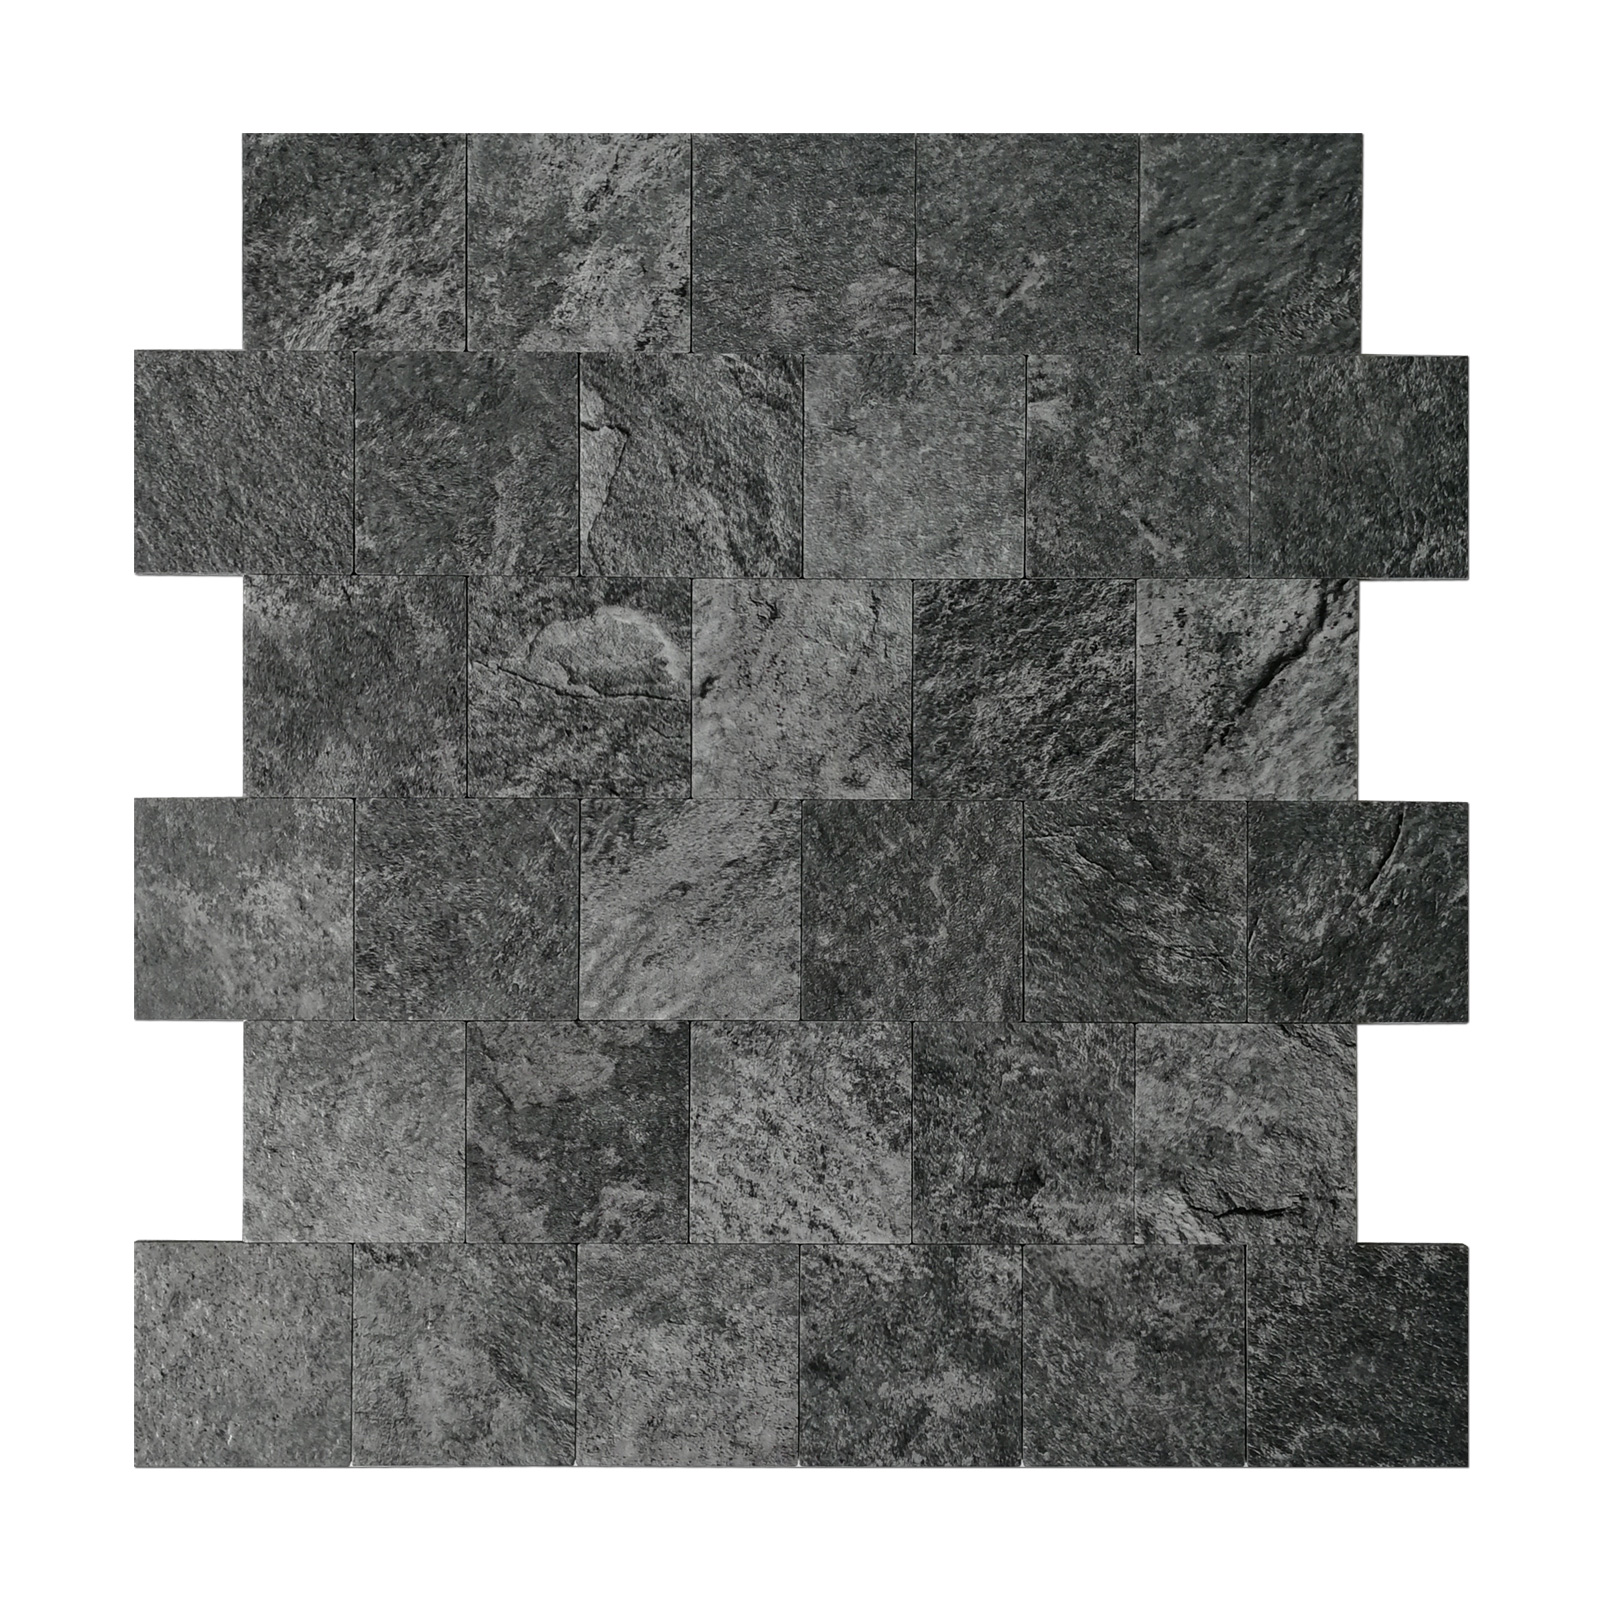 Art3d Peel and Stick Backsplash Tile for Kitchen, Faux Stone Backsplash Tiles, Black (5 Tiles)